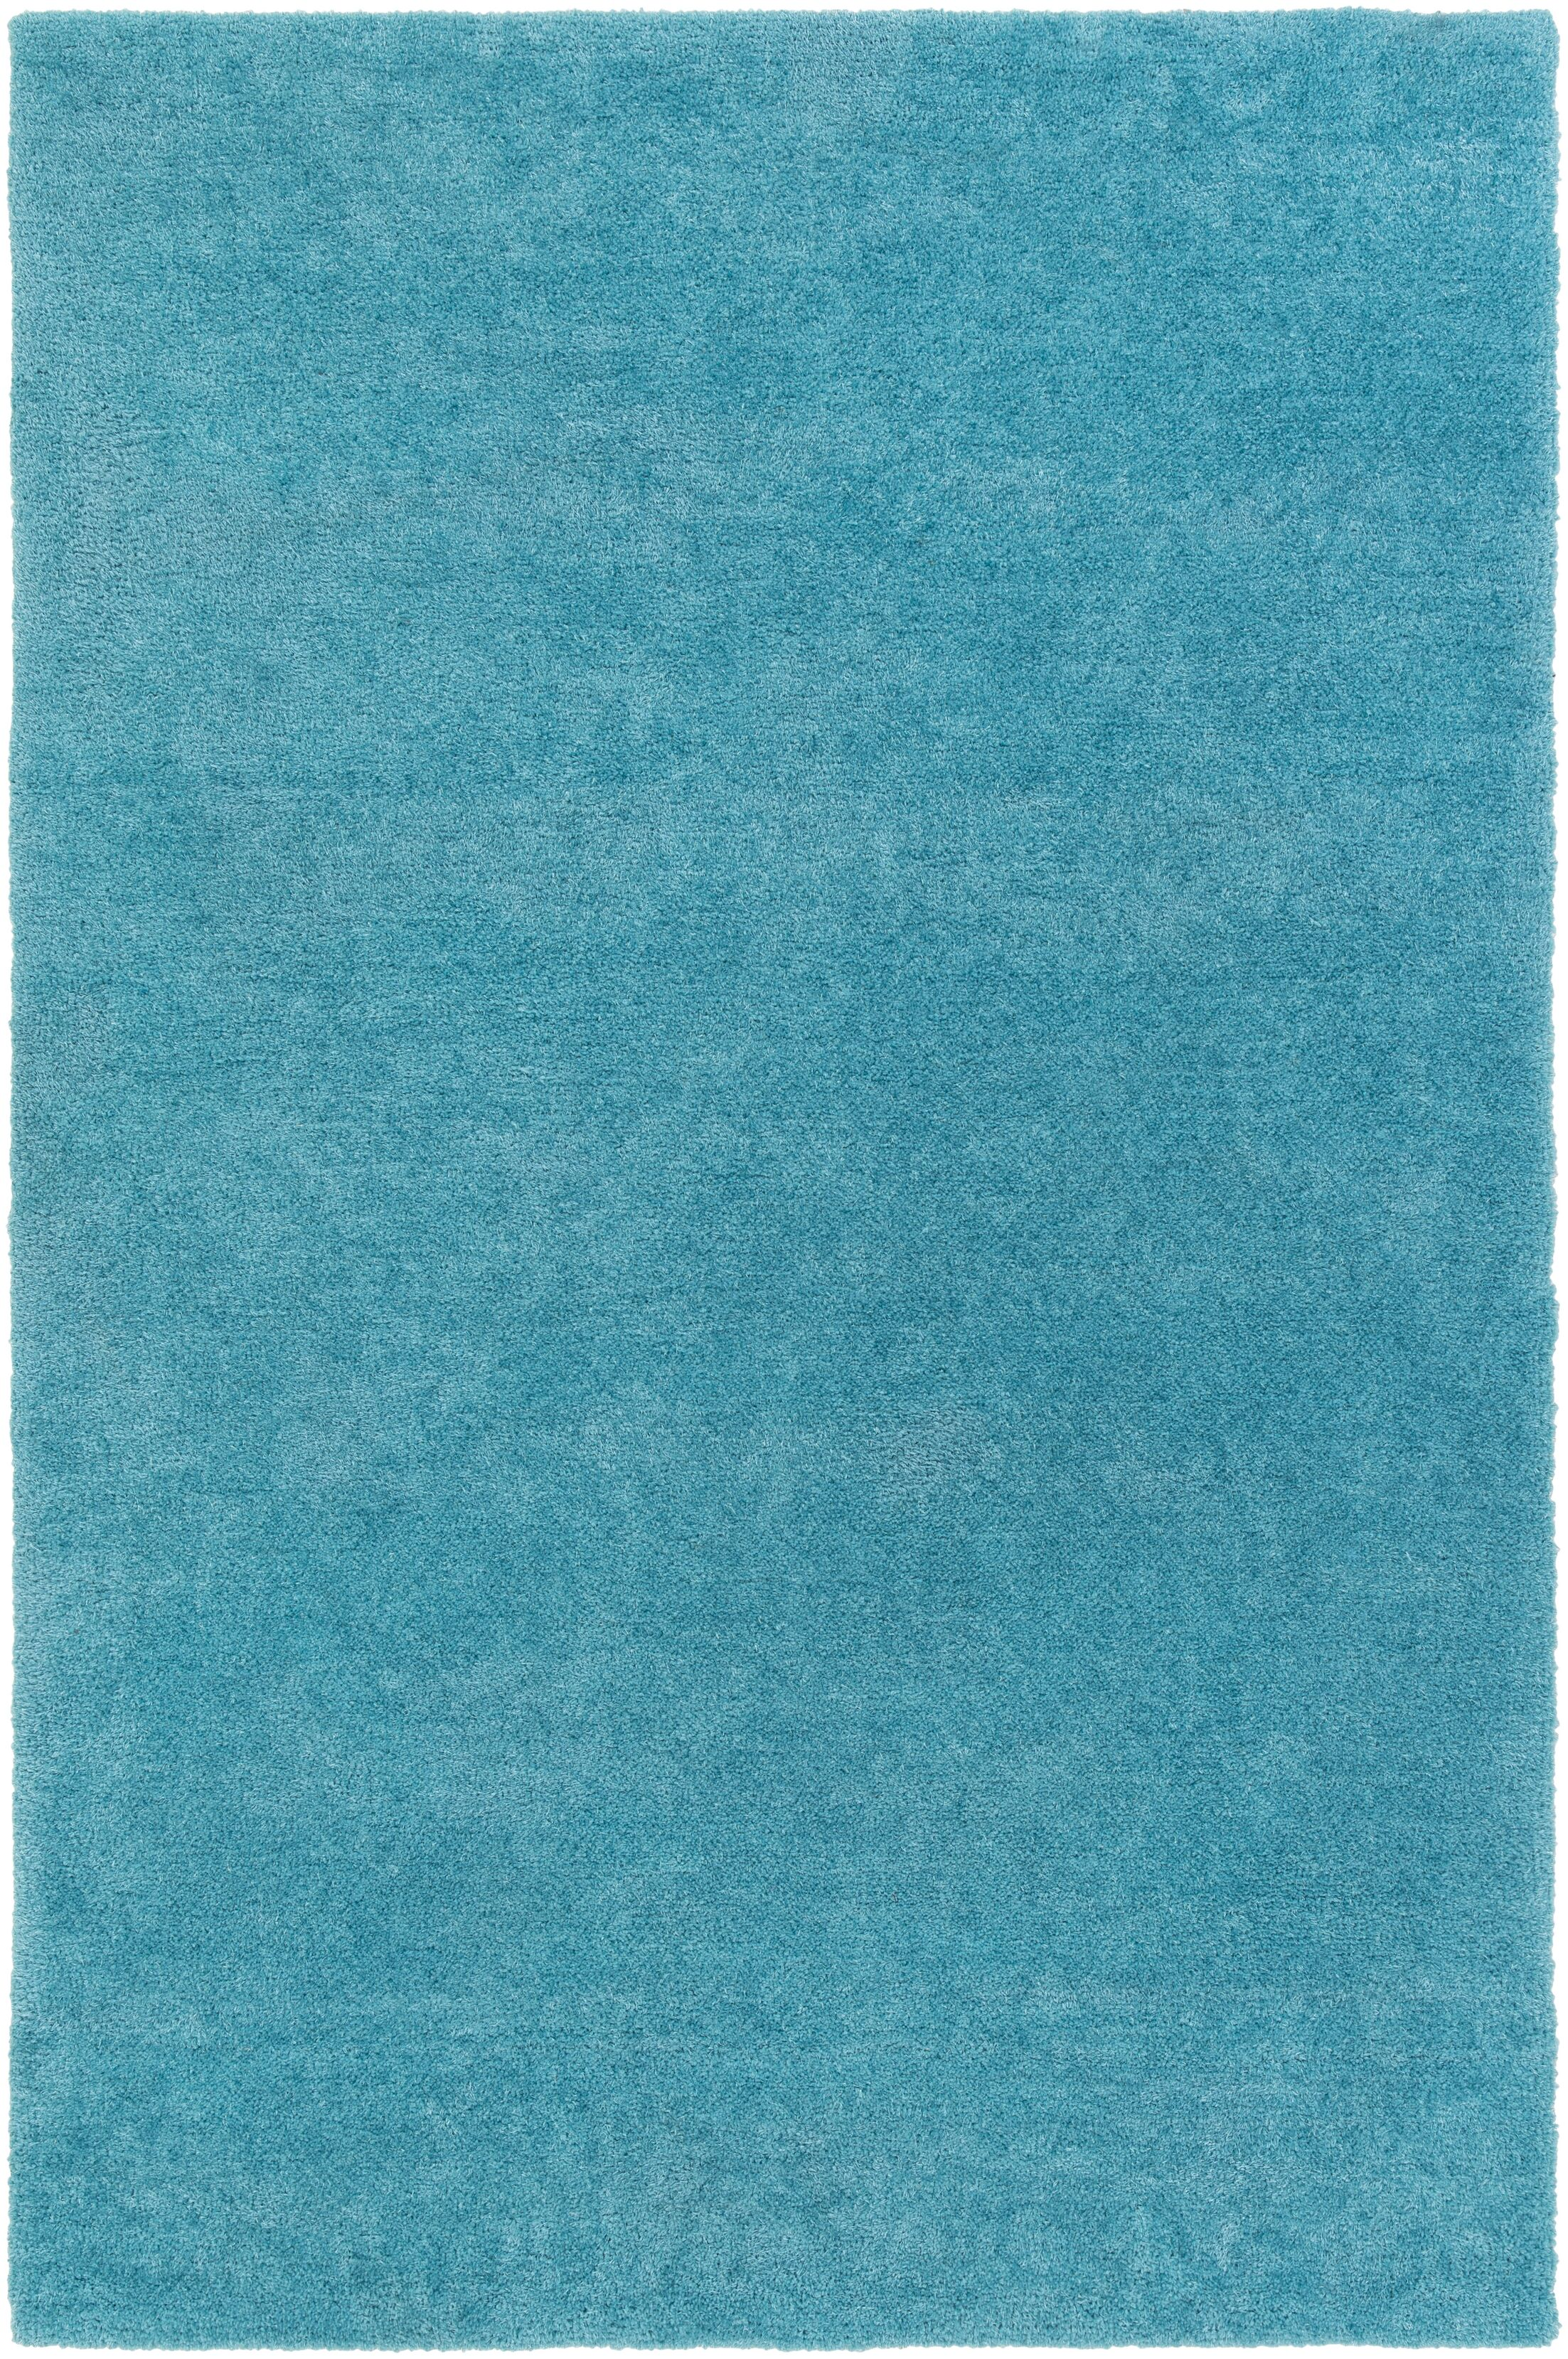 Eckman Turquoise Area Rug Rug Size: Rectangle 7'6